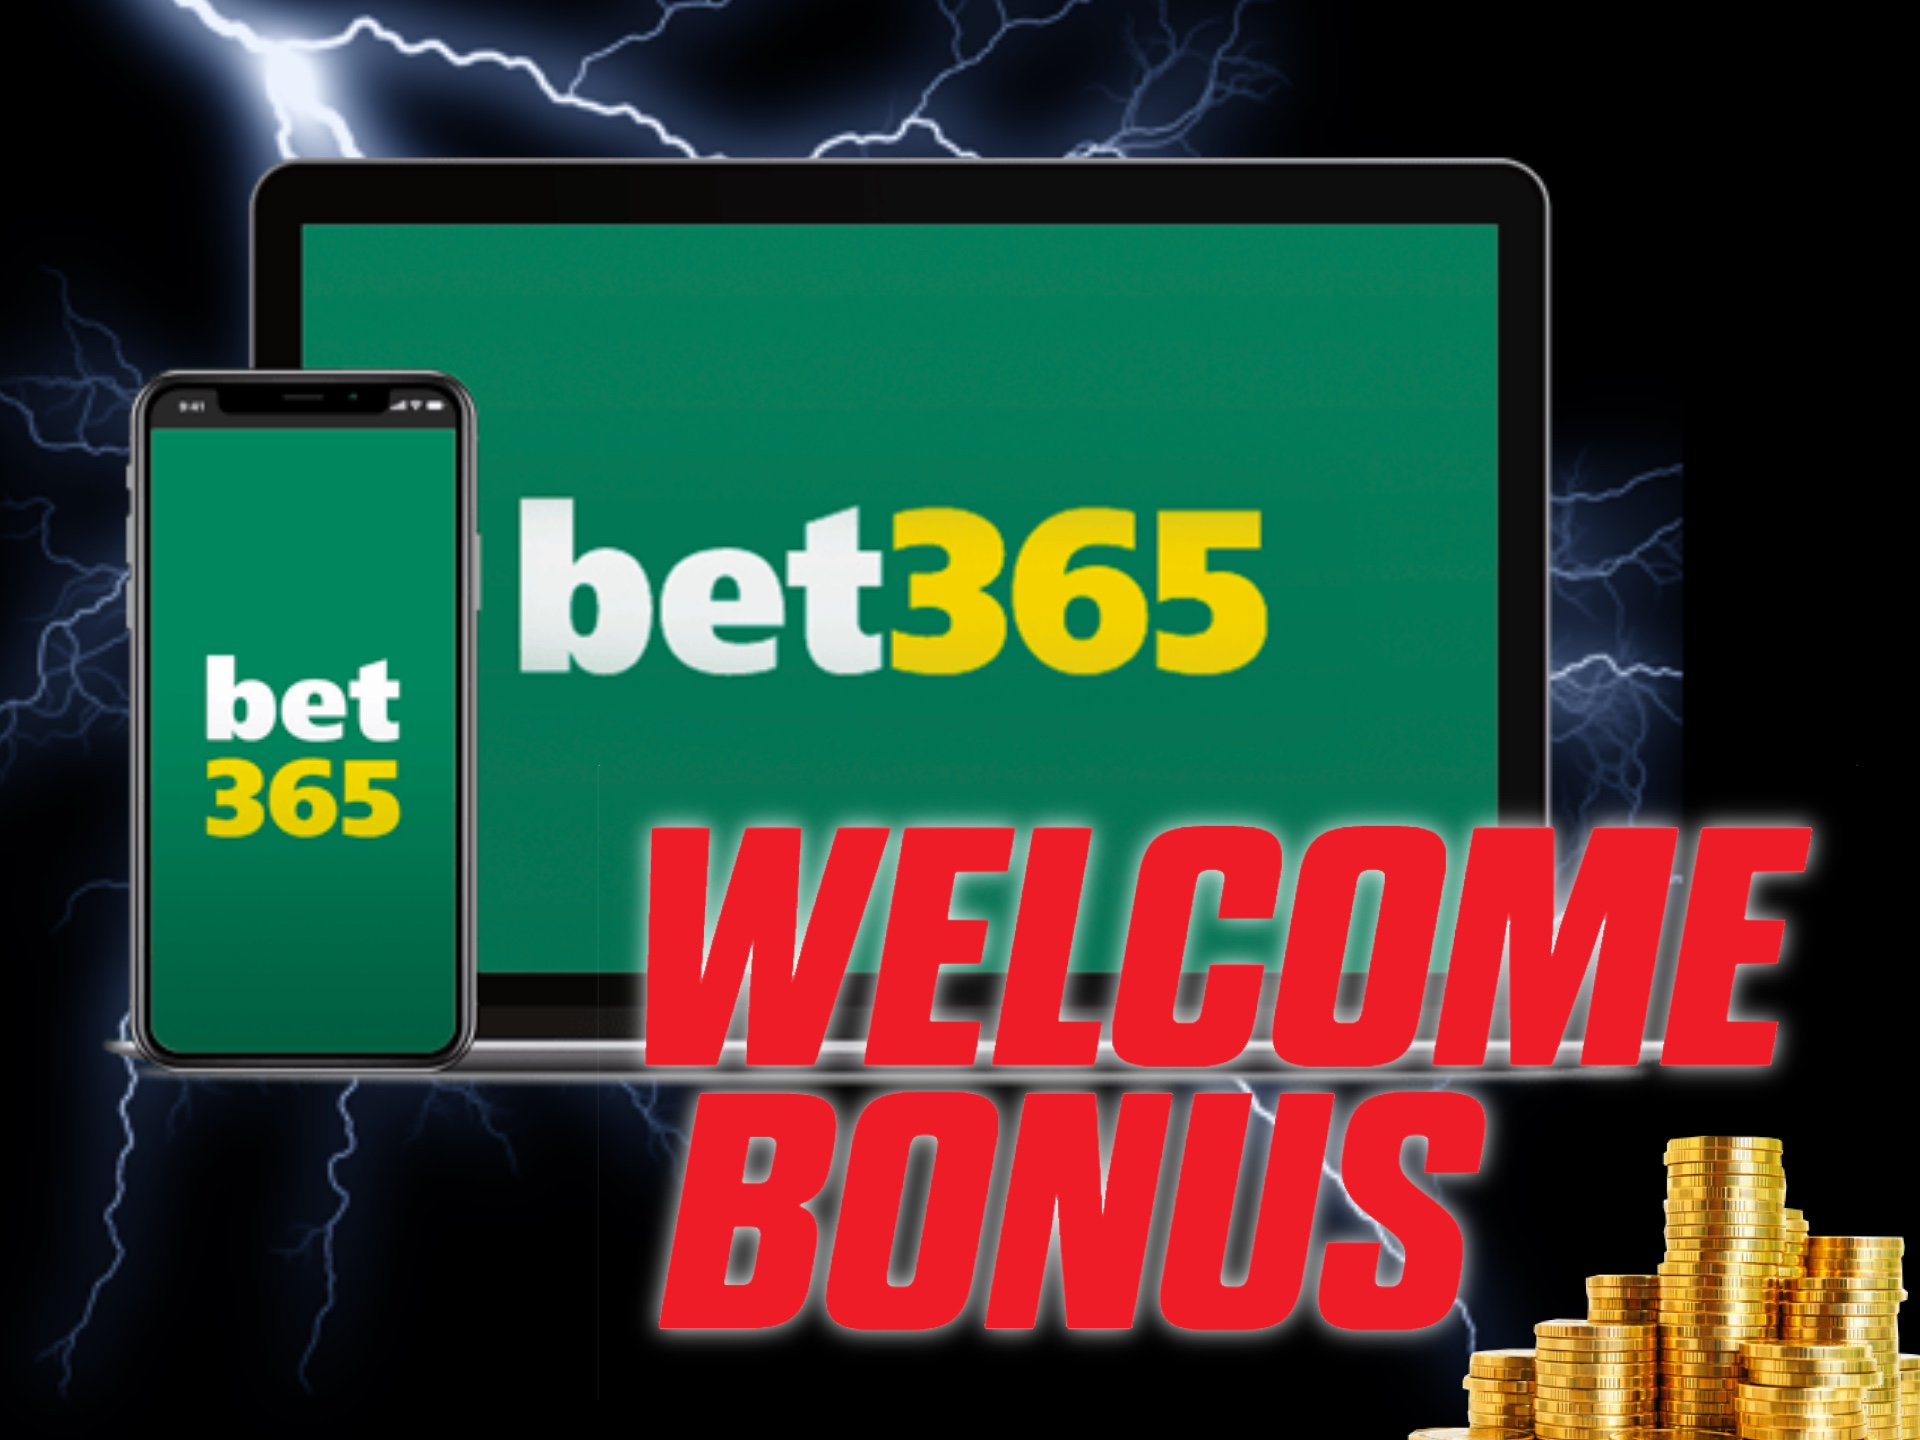 Make your first deposit at bet365 and get your welcome bonus on betting.